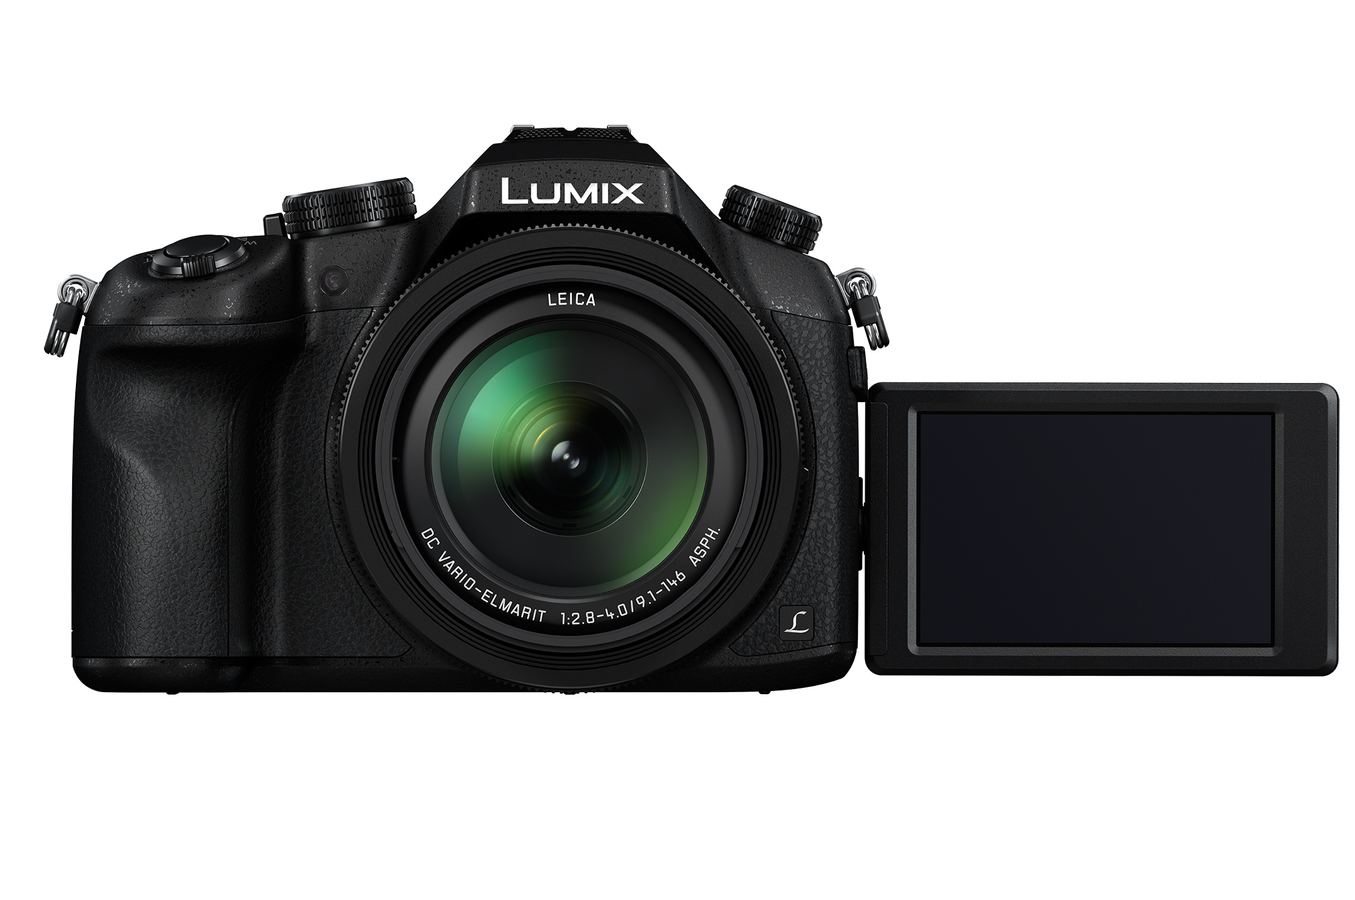 Appareil photo bridge panasonic lumix fz1000 noir lumix for Changer ecran appareil photo lumix